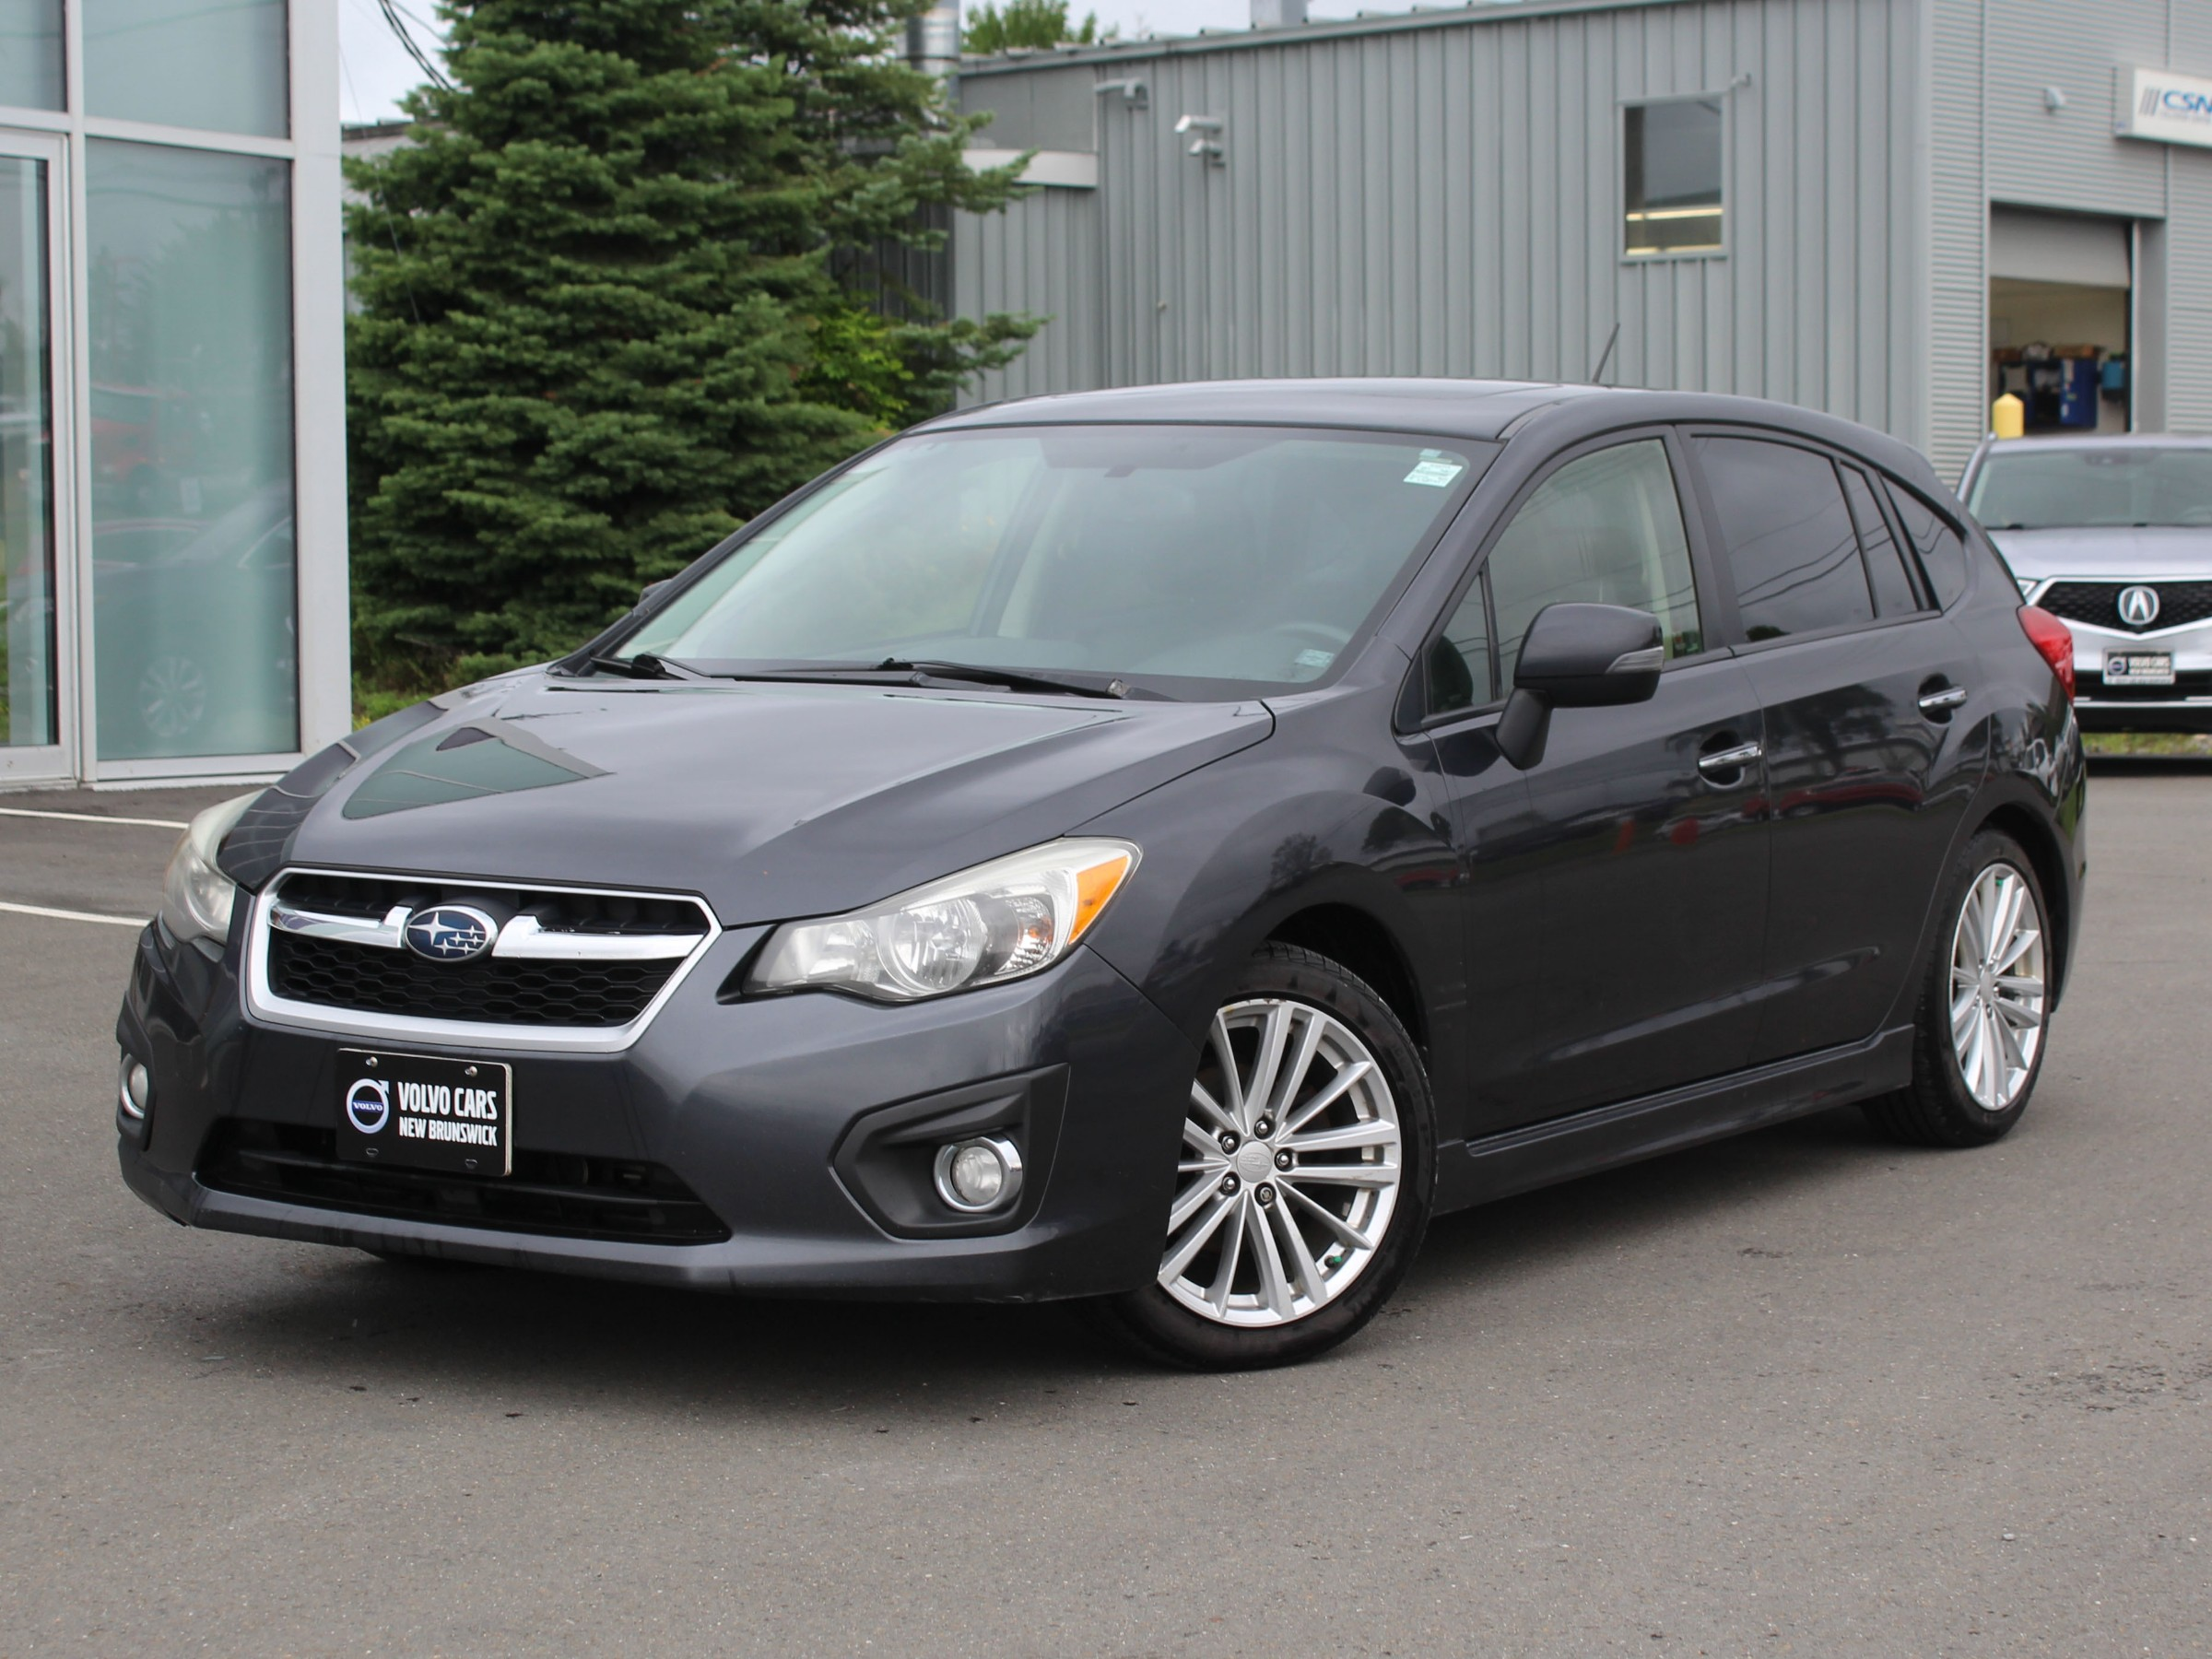 Pre-Owned 2012 Subaru Impreza 2.0i Limited Package